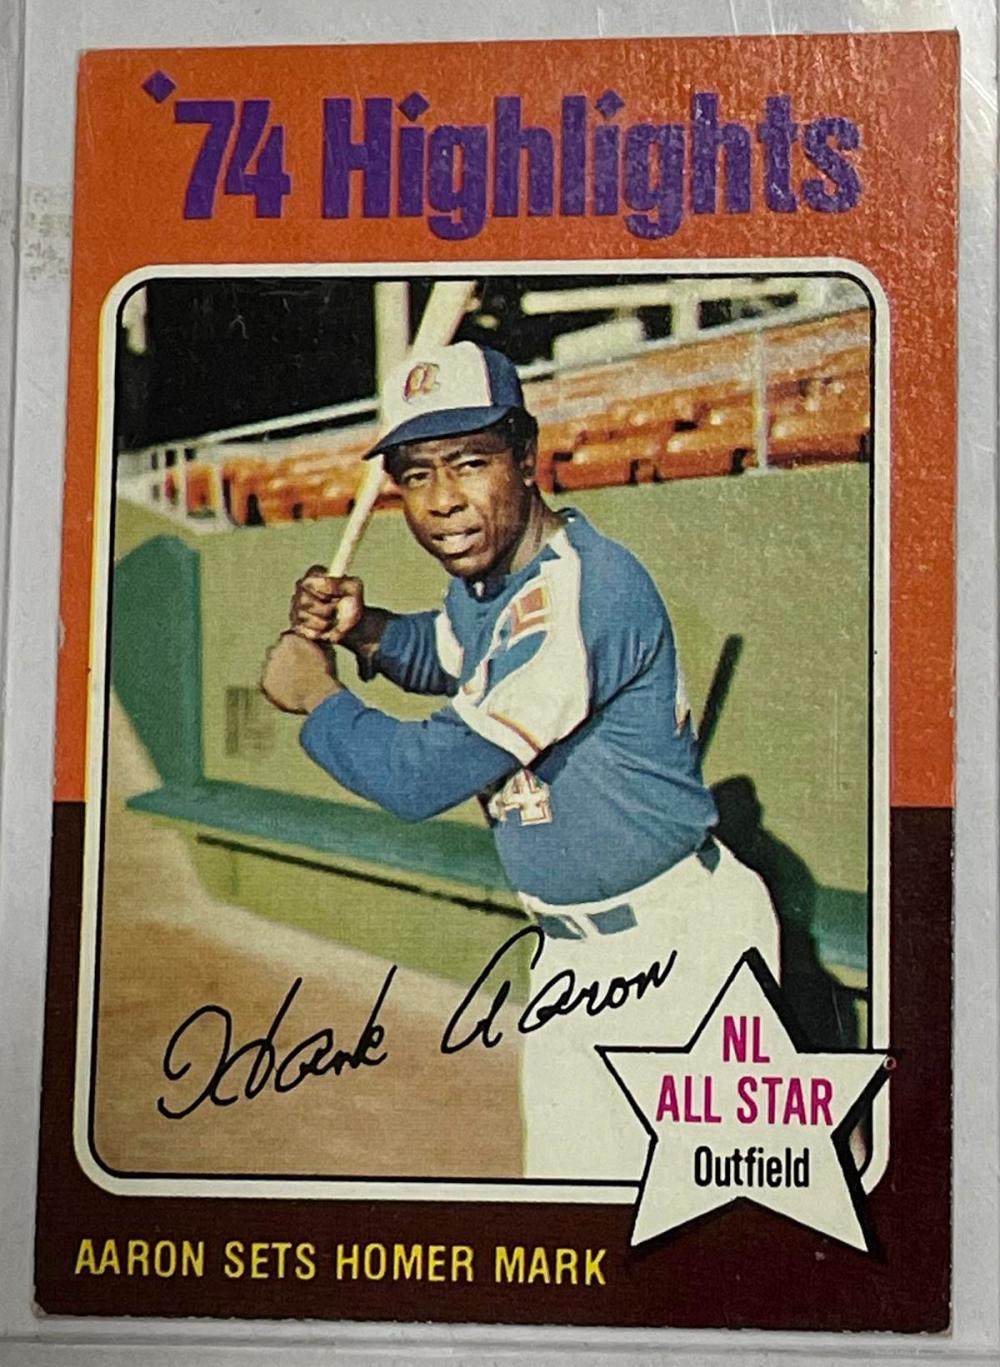 "1975 Topps #1 Hank Aaron ""Sets Homer Mark"" '74 Highlights Baseball Card"